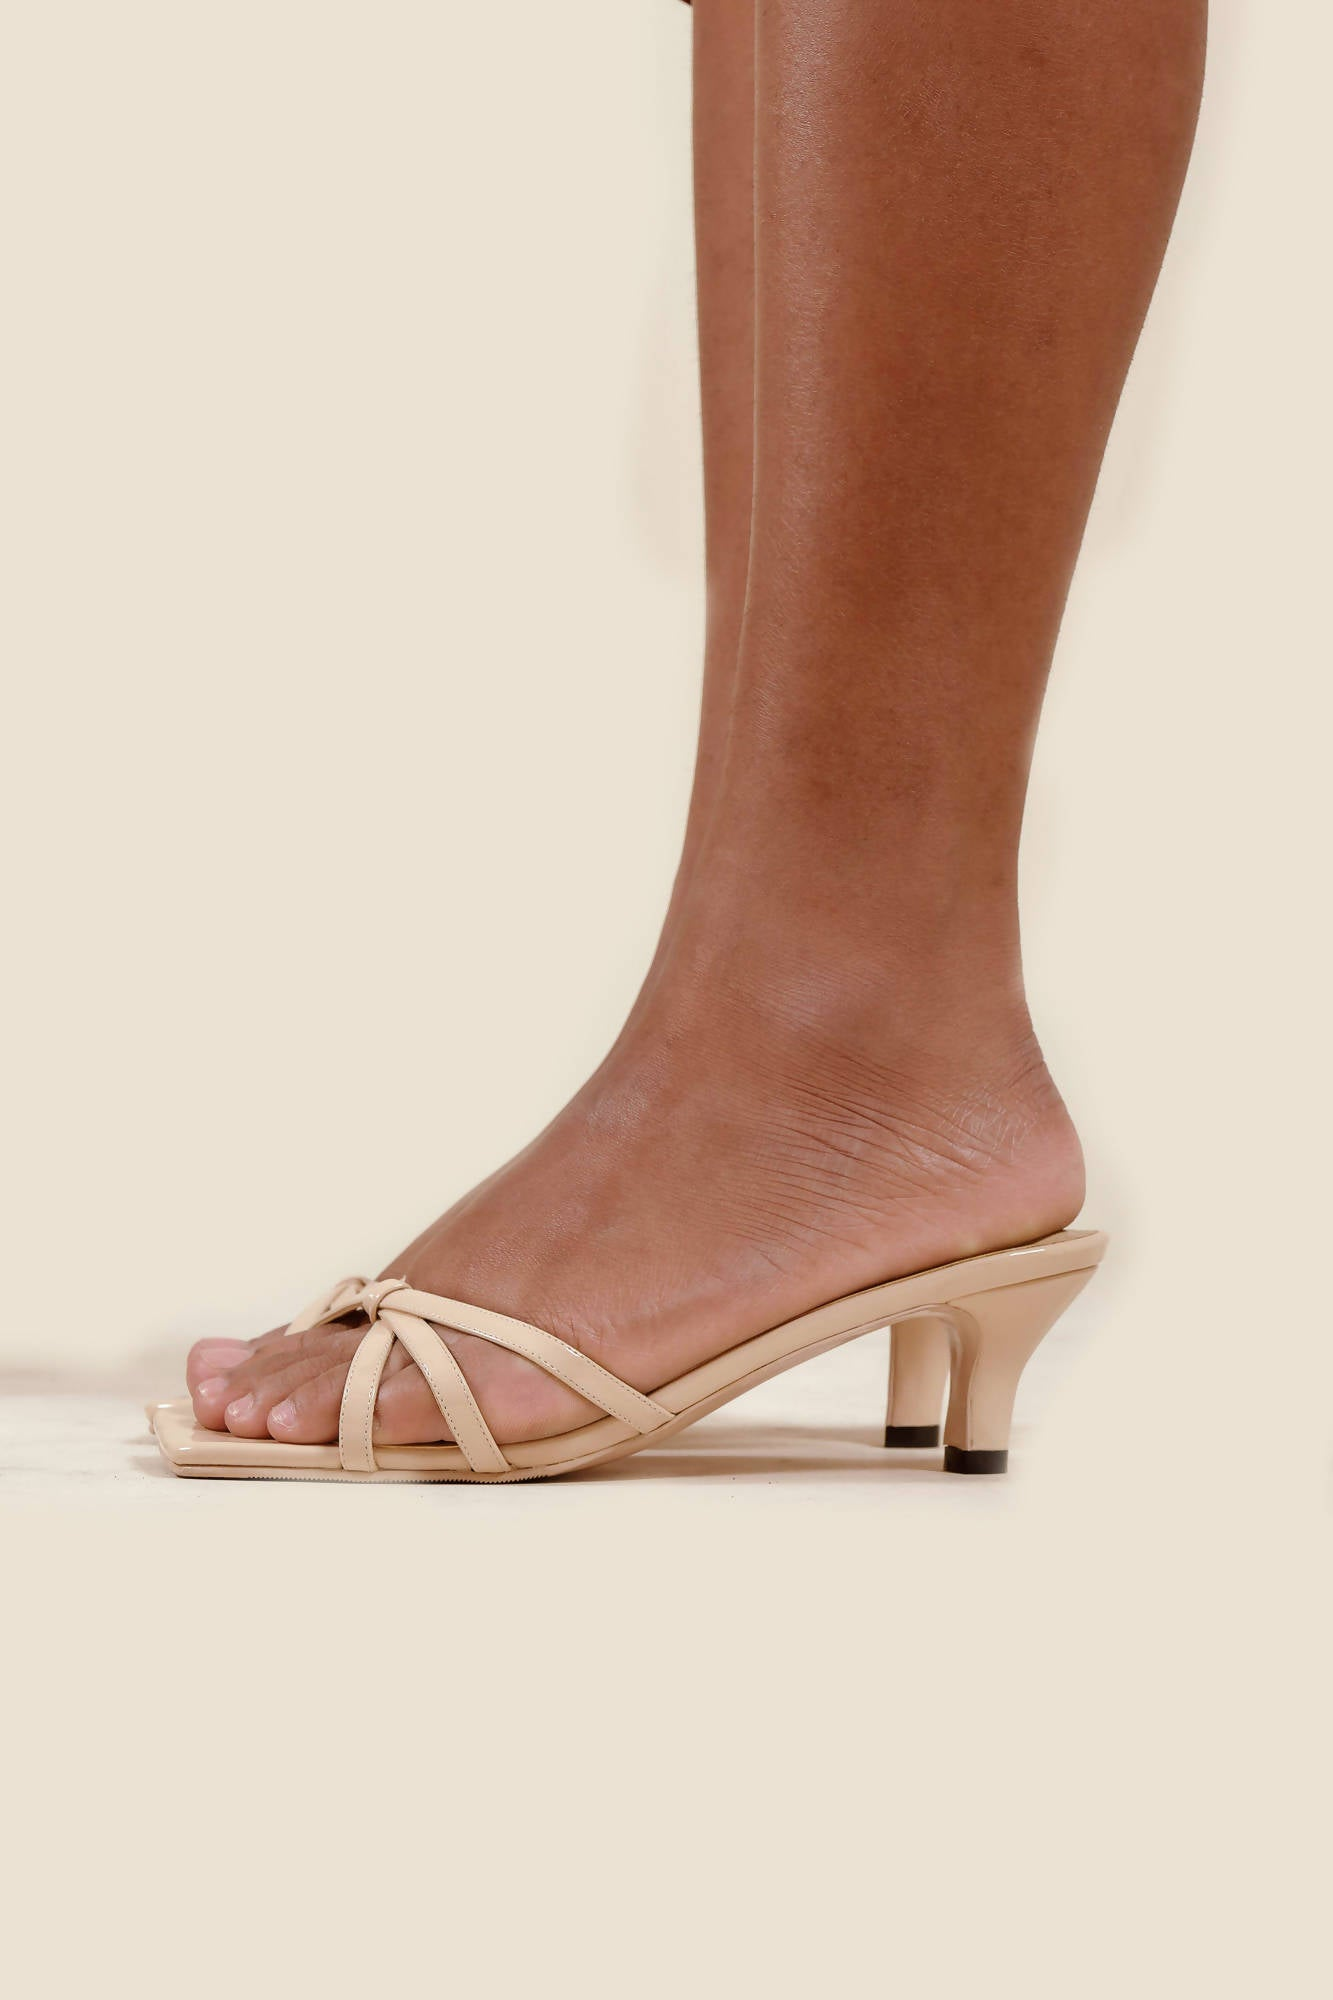 The Tabitha in Beige